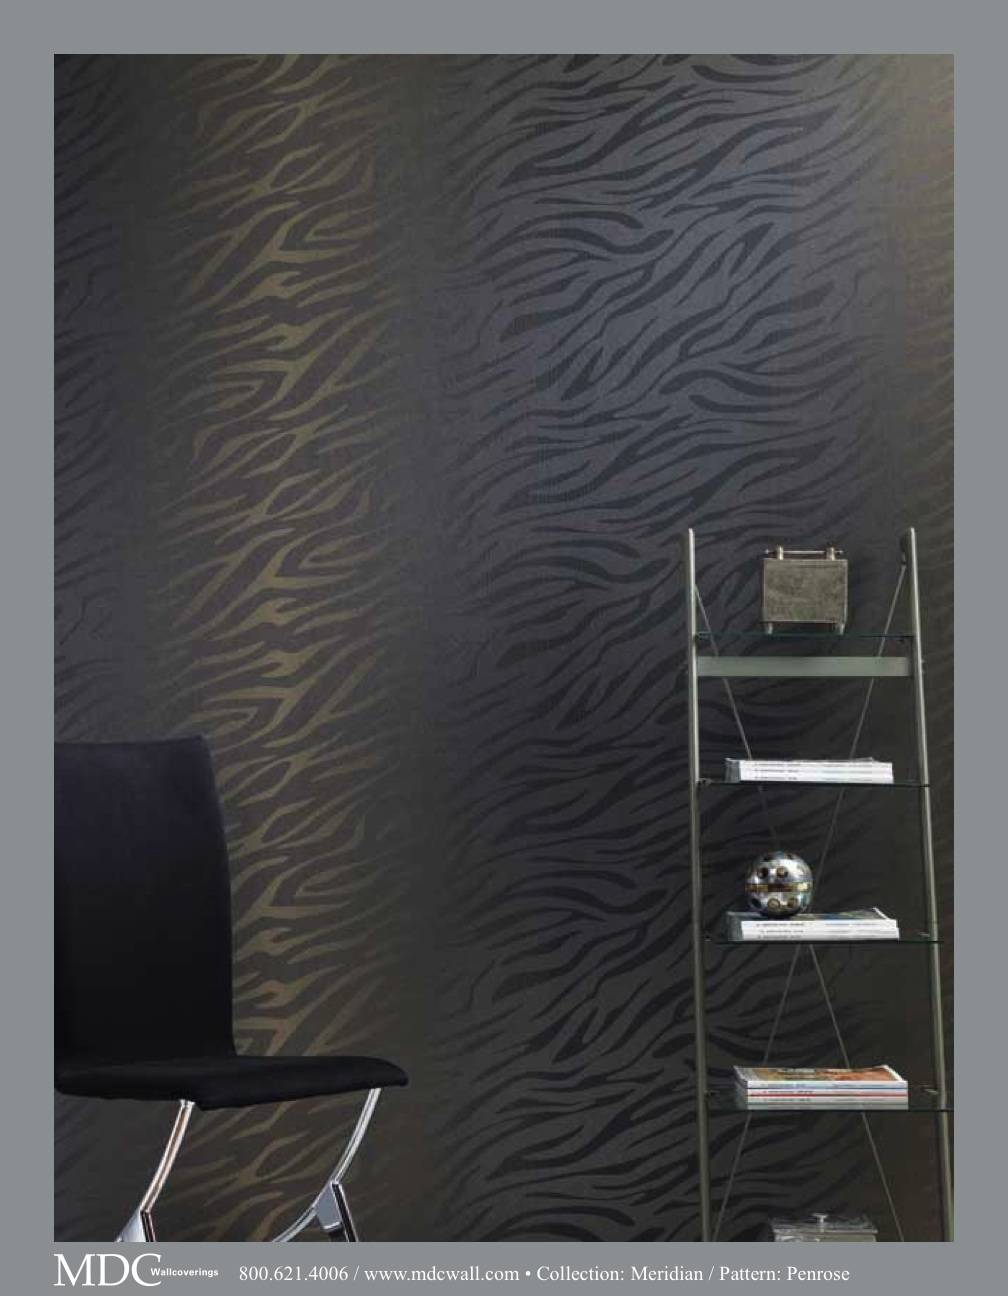 textured metallic wall covering wallpaper